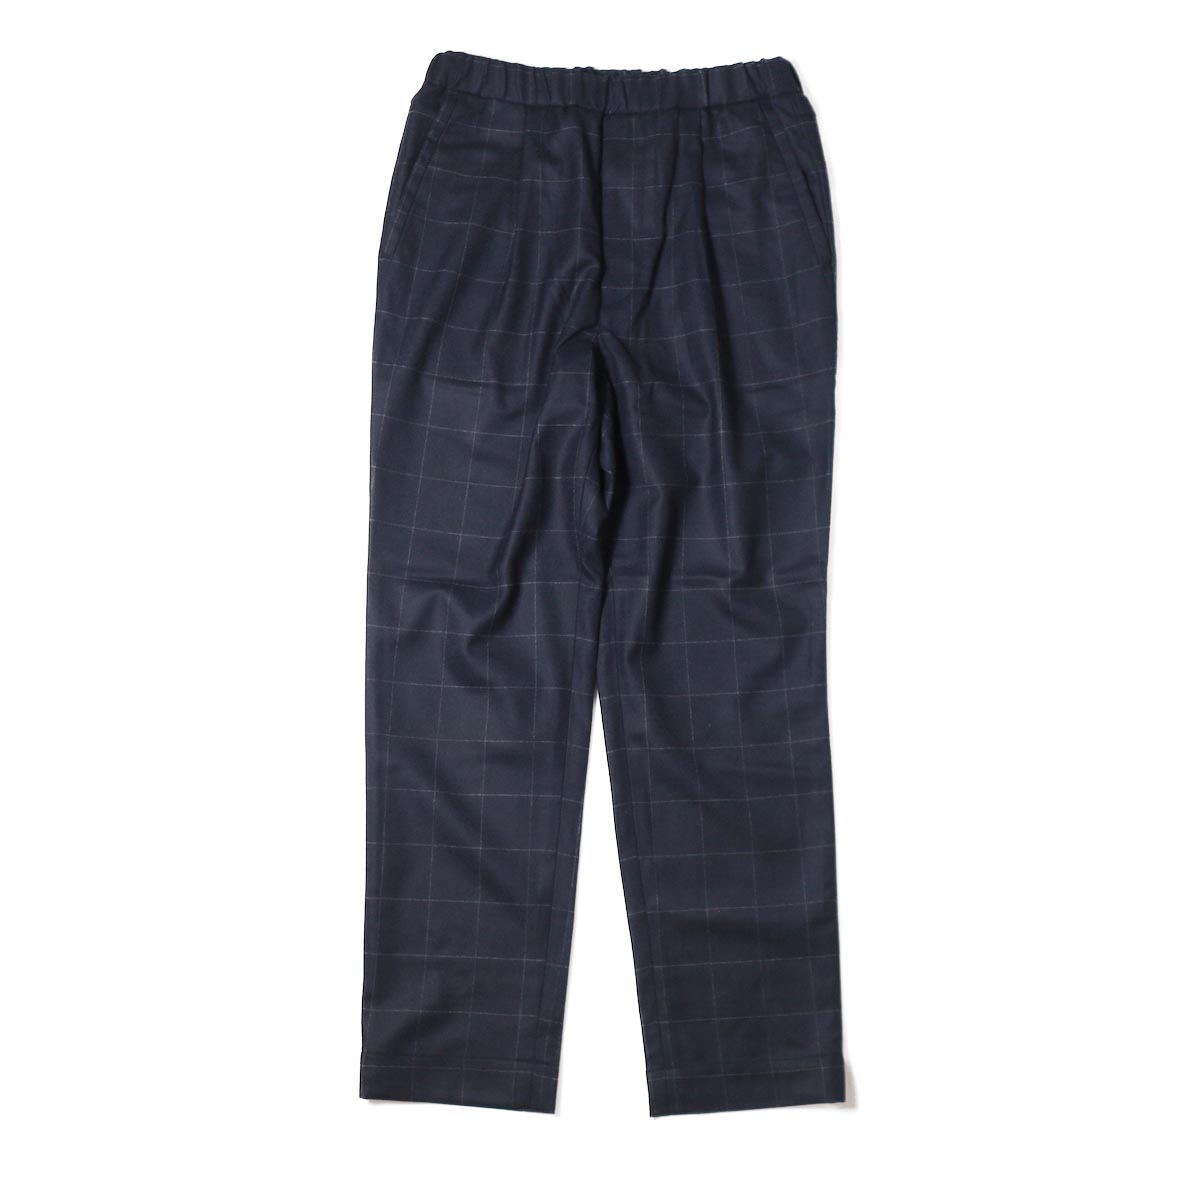 A VONTADE / 1 Tuck Tapered Easy Trousers -DK.NAVY(WINDOWPEN)